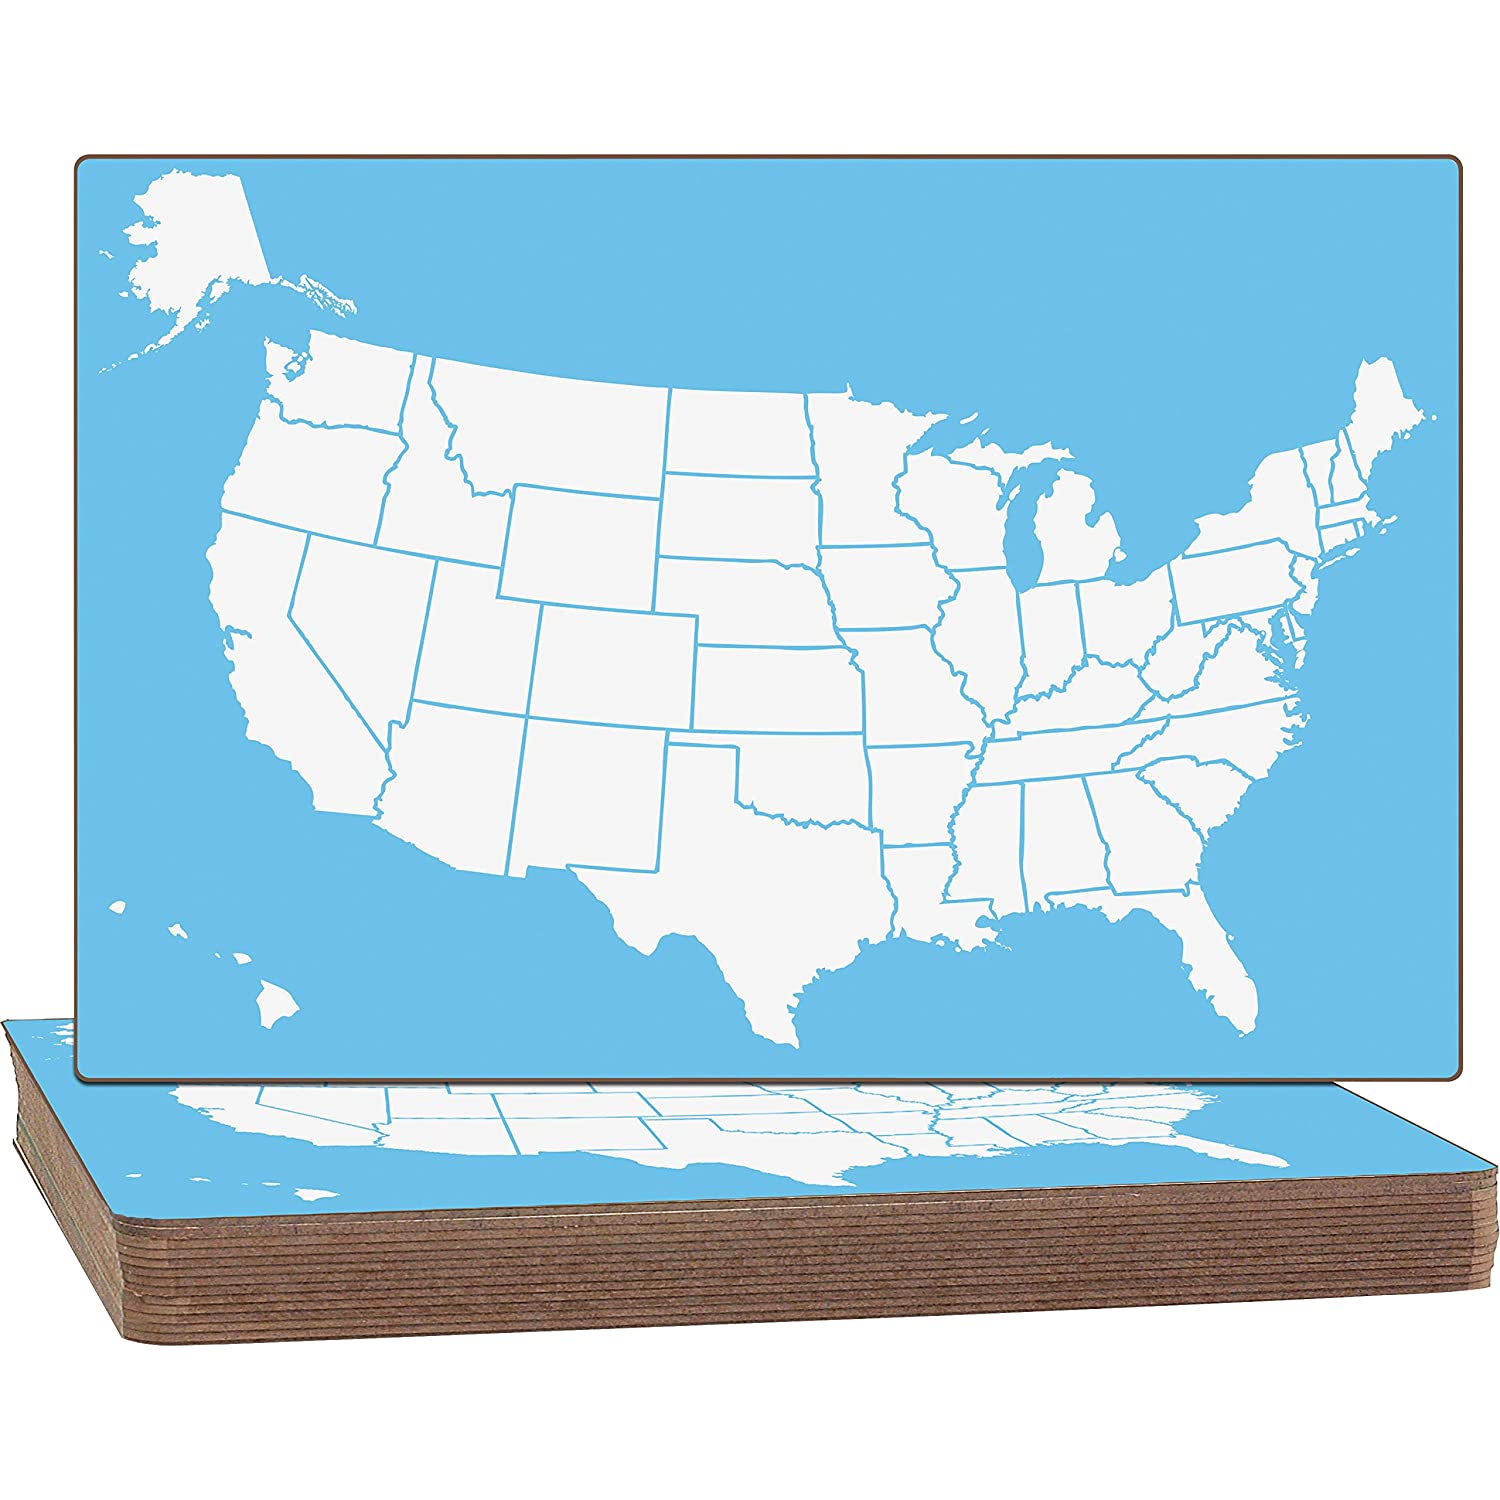 us map dry erase board Rqwypip9ktv8m